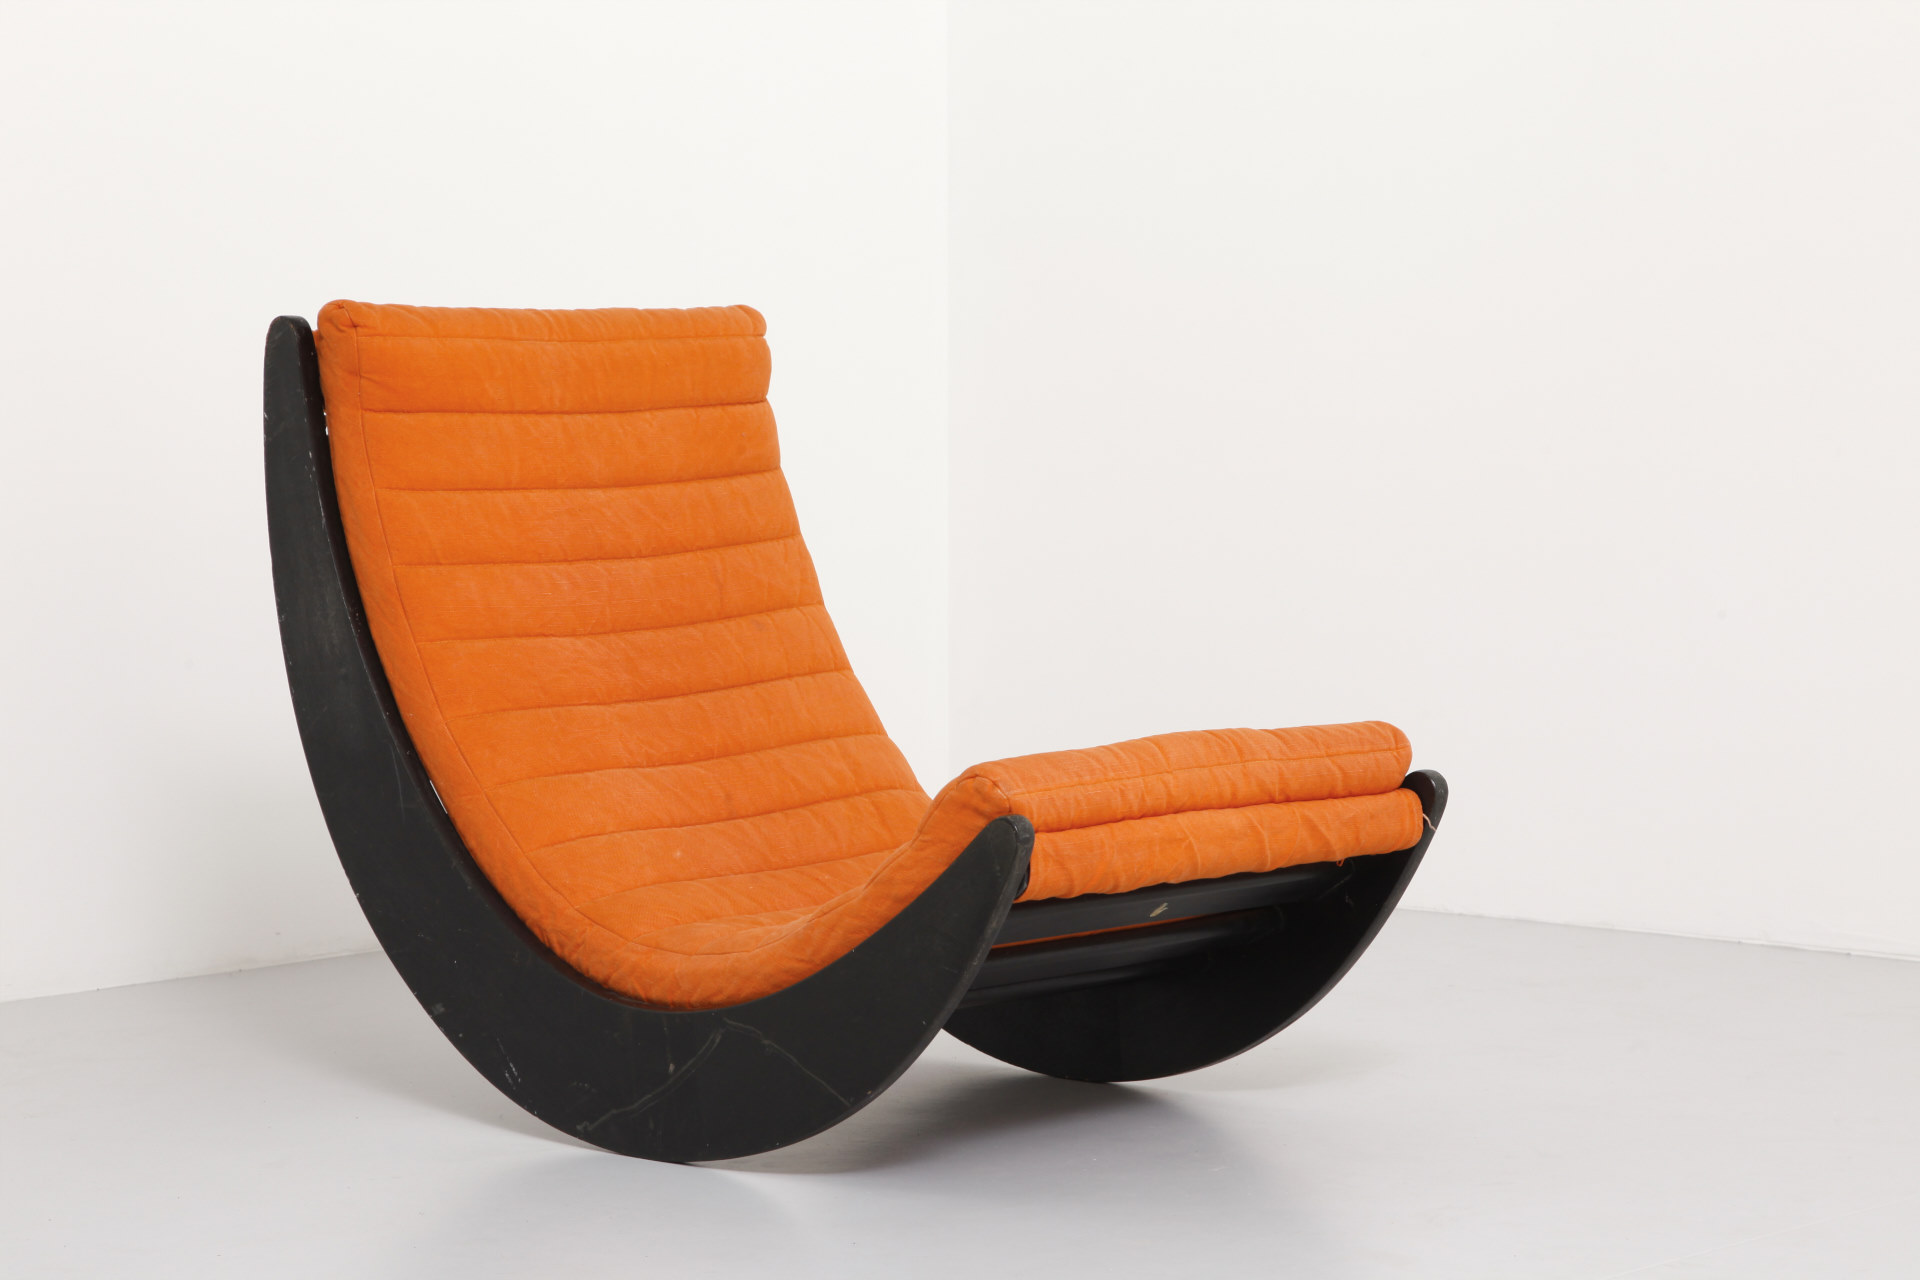 Verner panton icono del dise o industrial dan s blog de for Muebles de diseno industrial